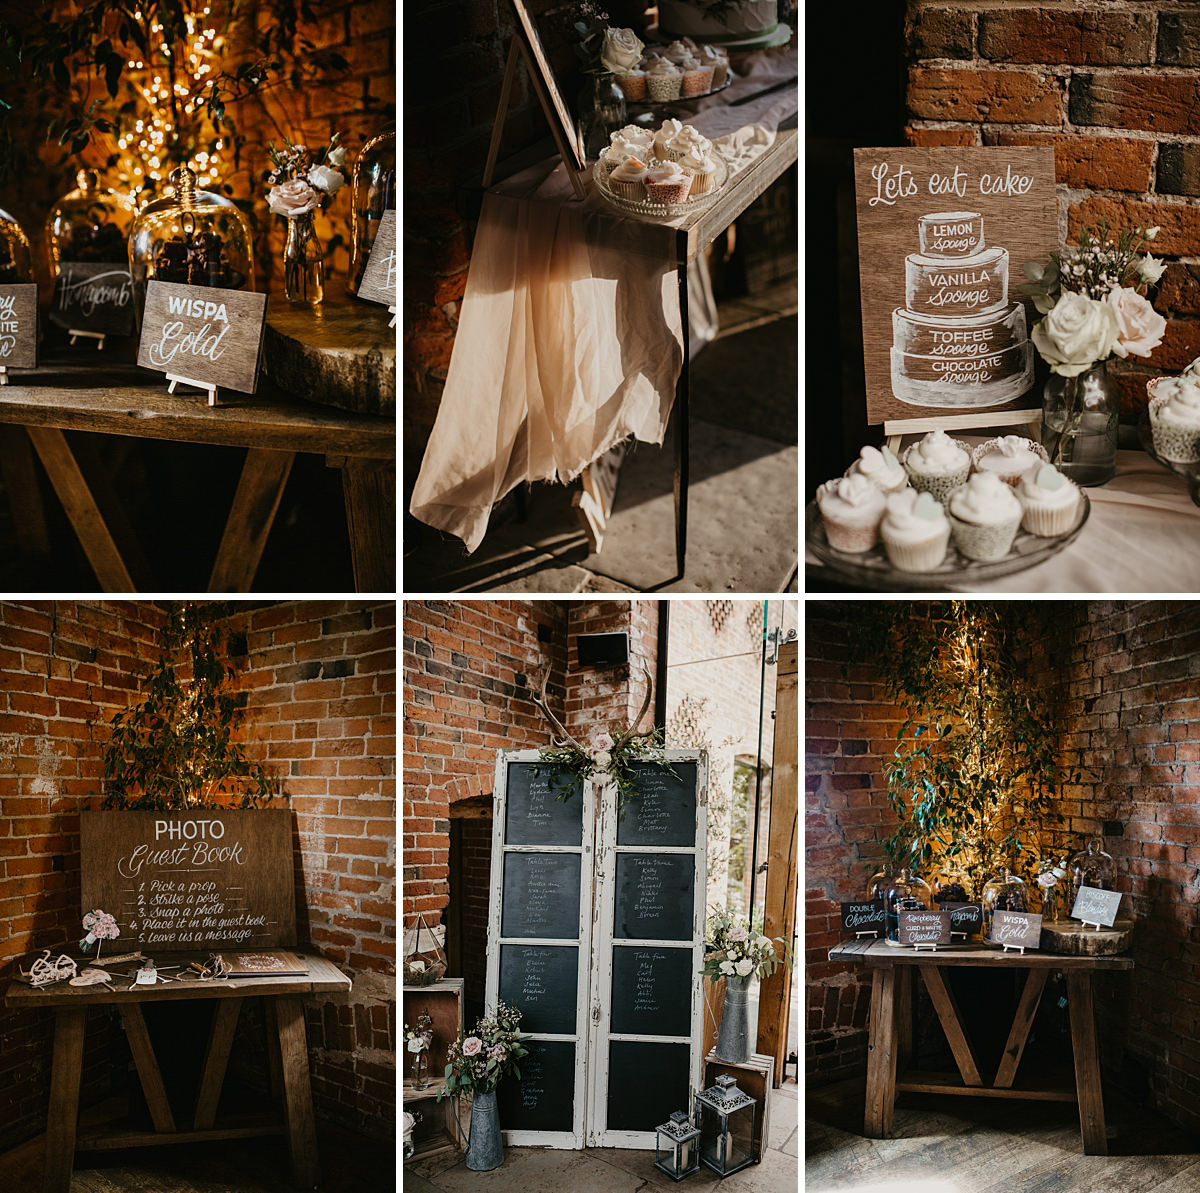 wedding details at Shustoke Barn venue in Warwickshire